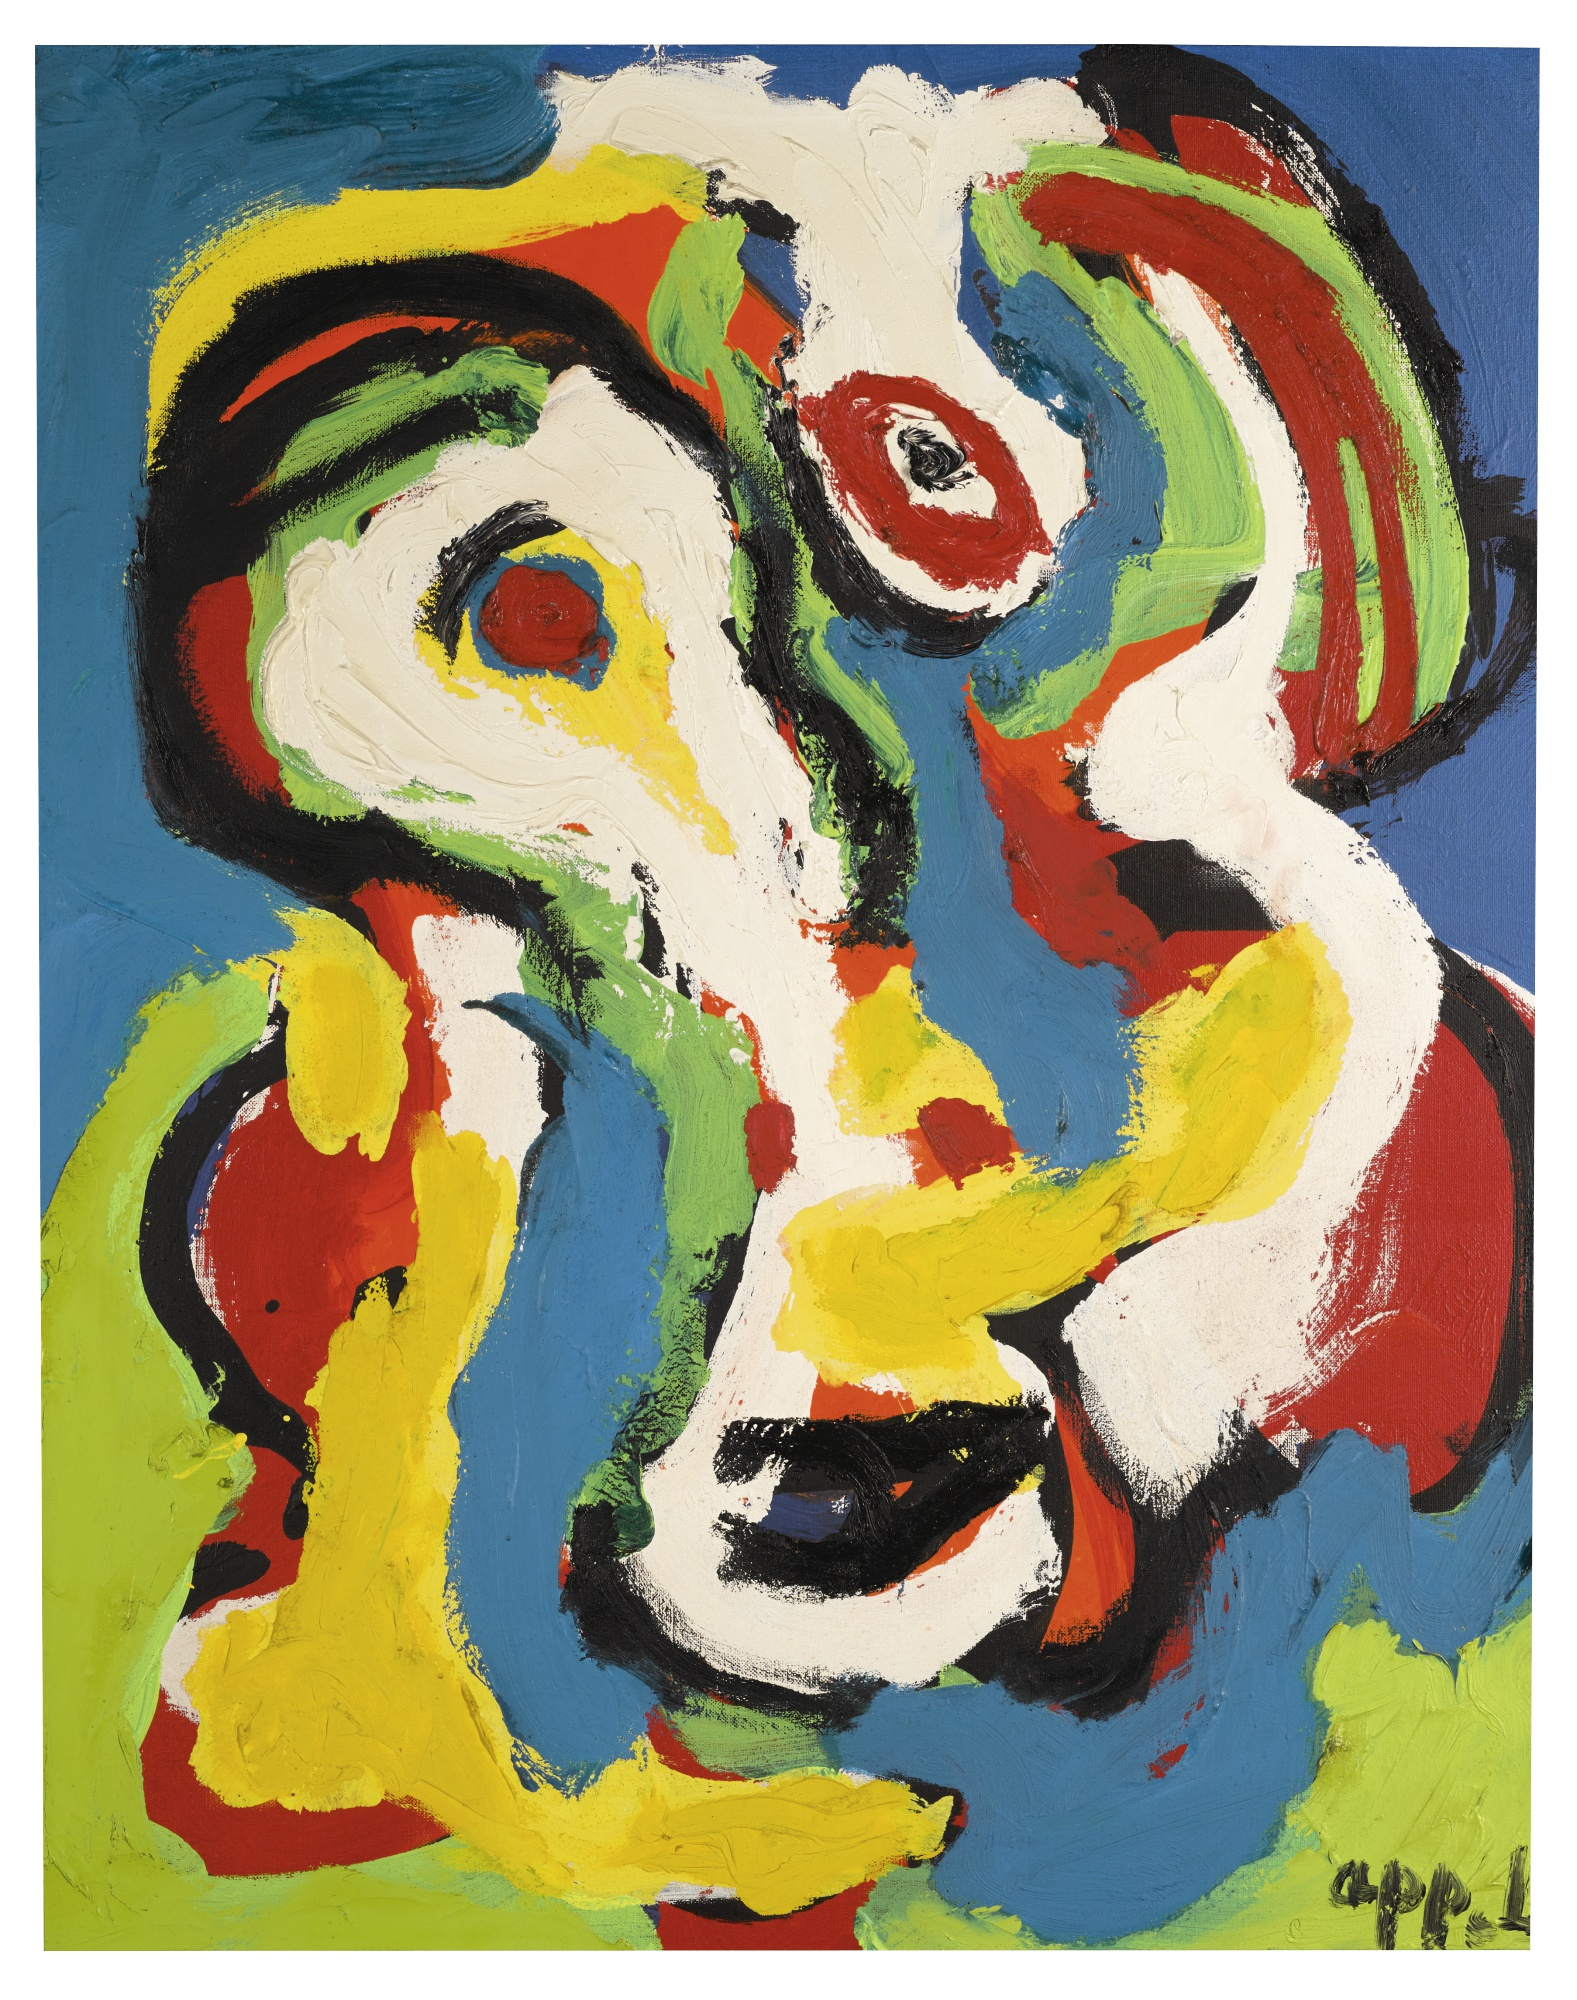 Karel Appel-De Man-1969